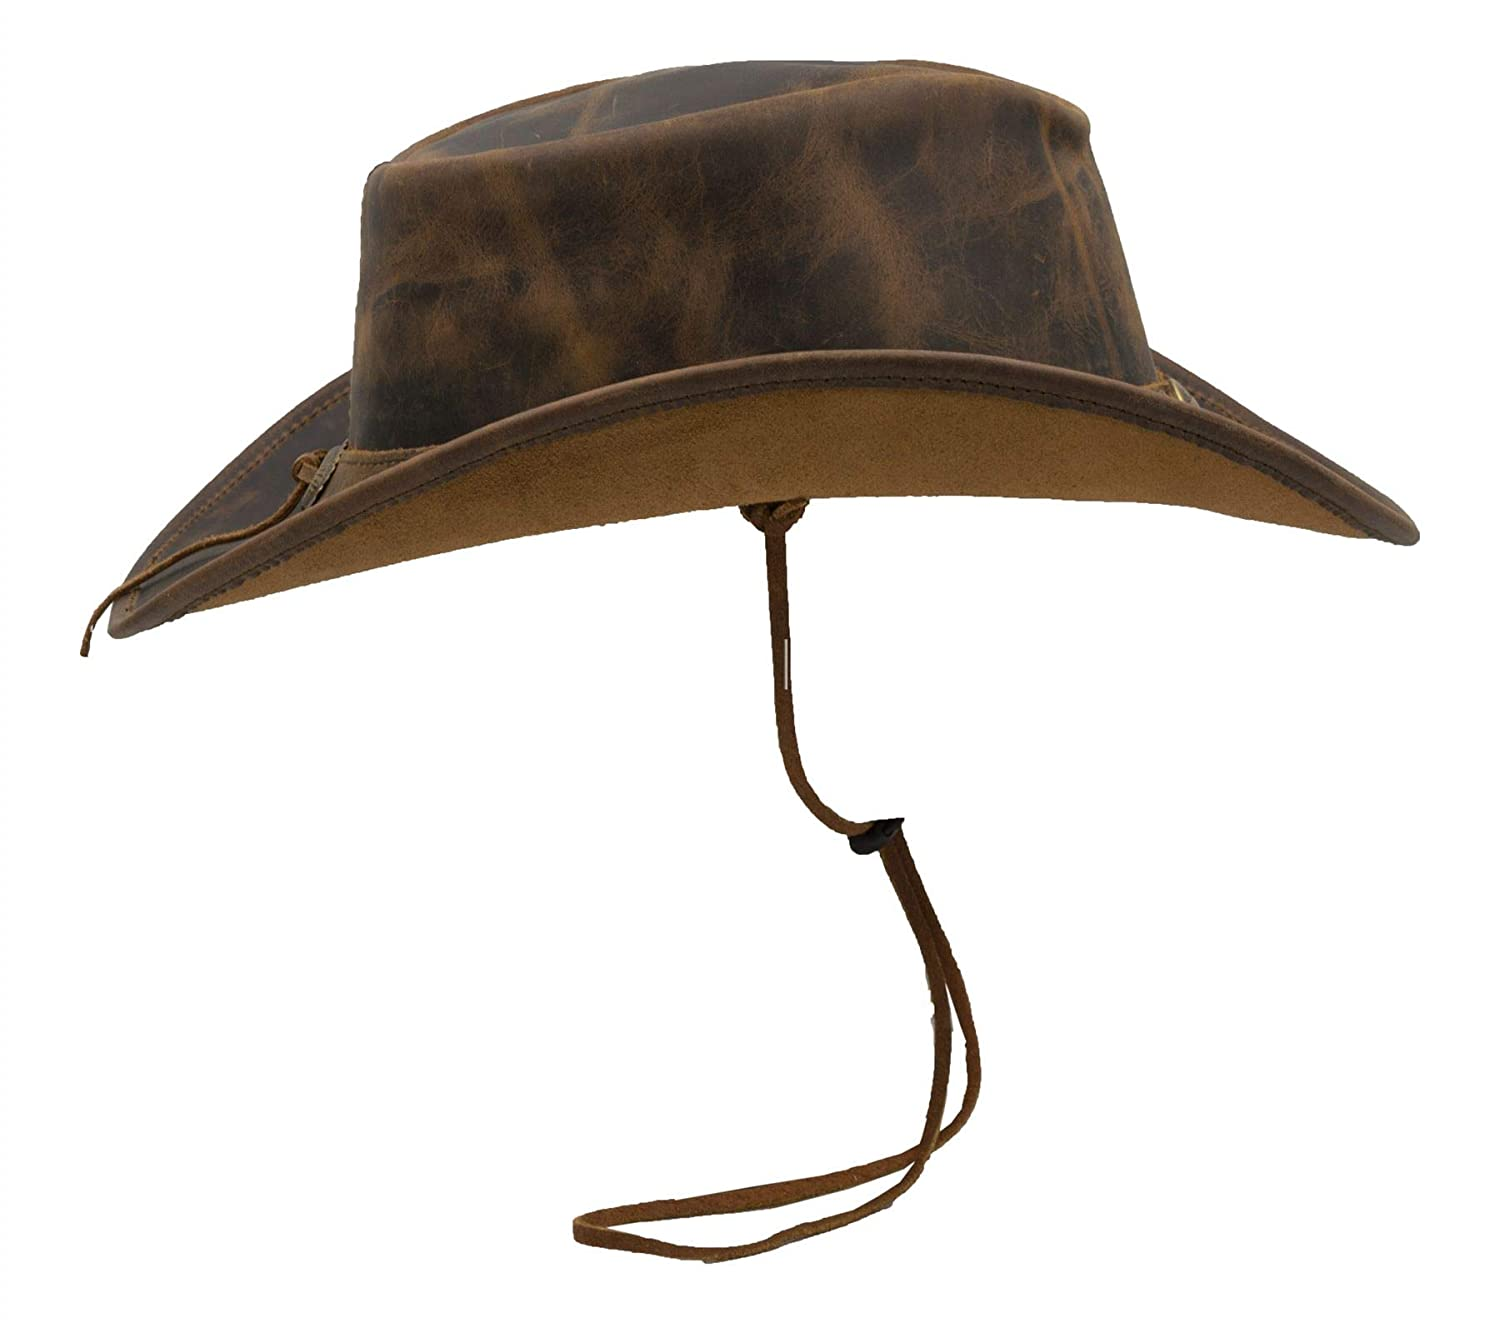 Leather Cowhide Outback Brisbane Two Tone Hat Walker and Hawkes